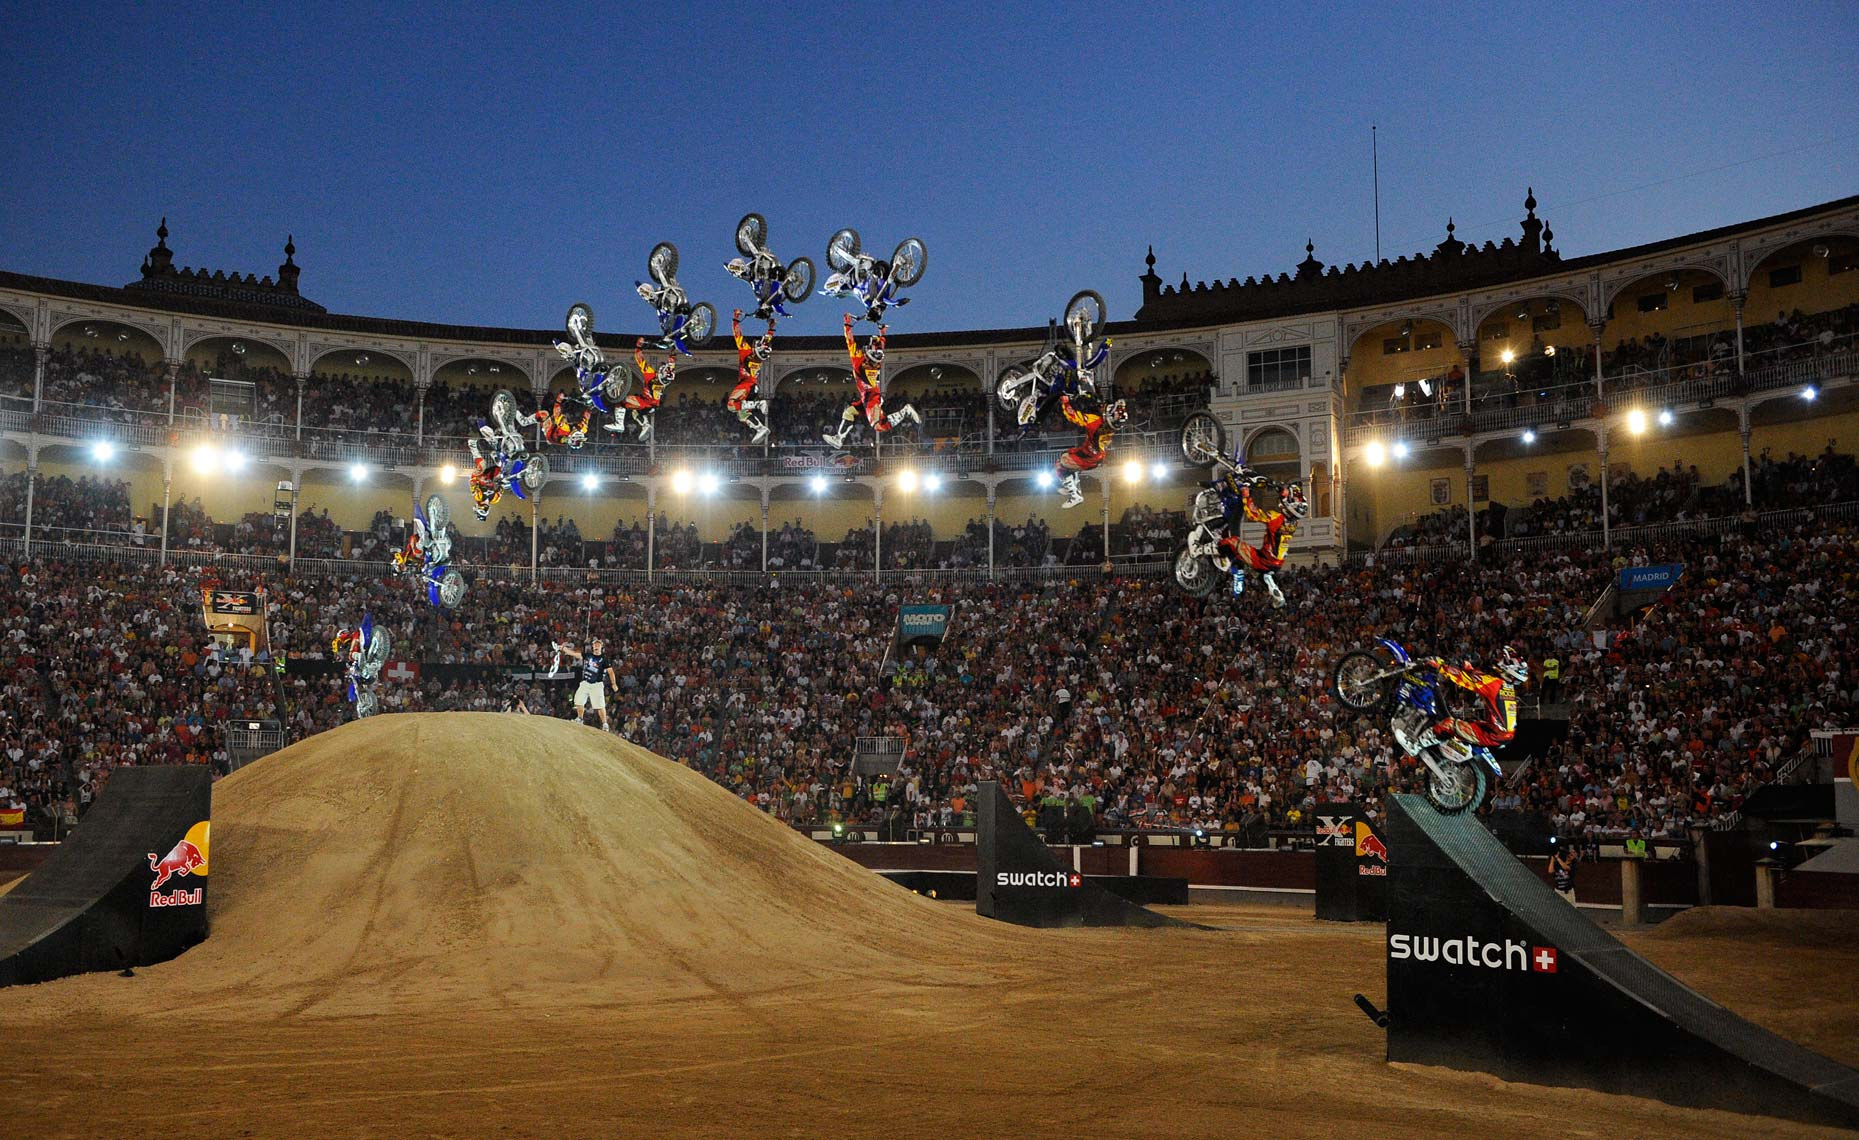 RD_180708_XFIGHTERS_MADRID_LUSK_SEQ1.jpg